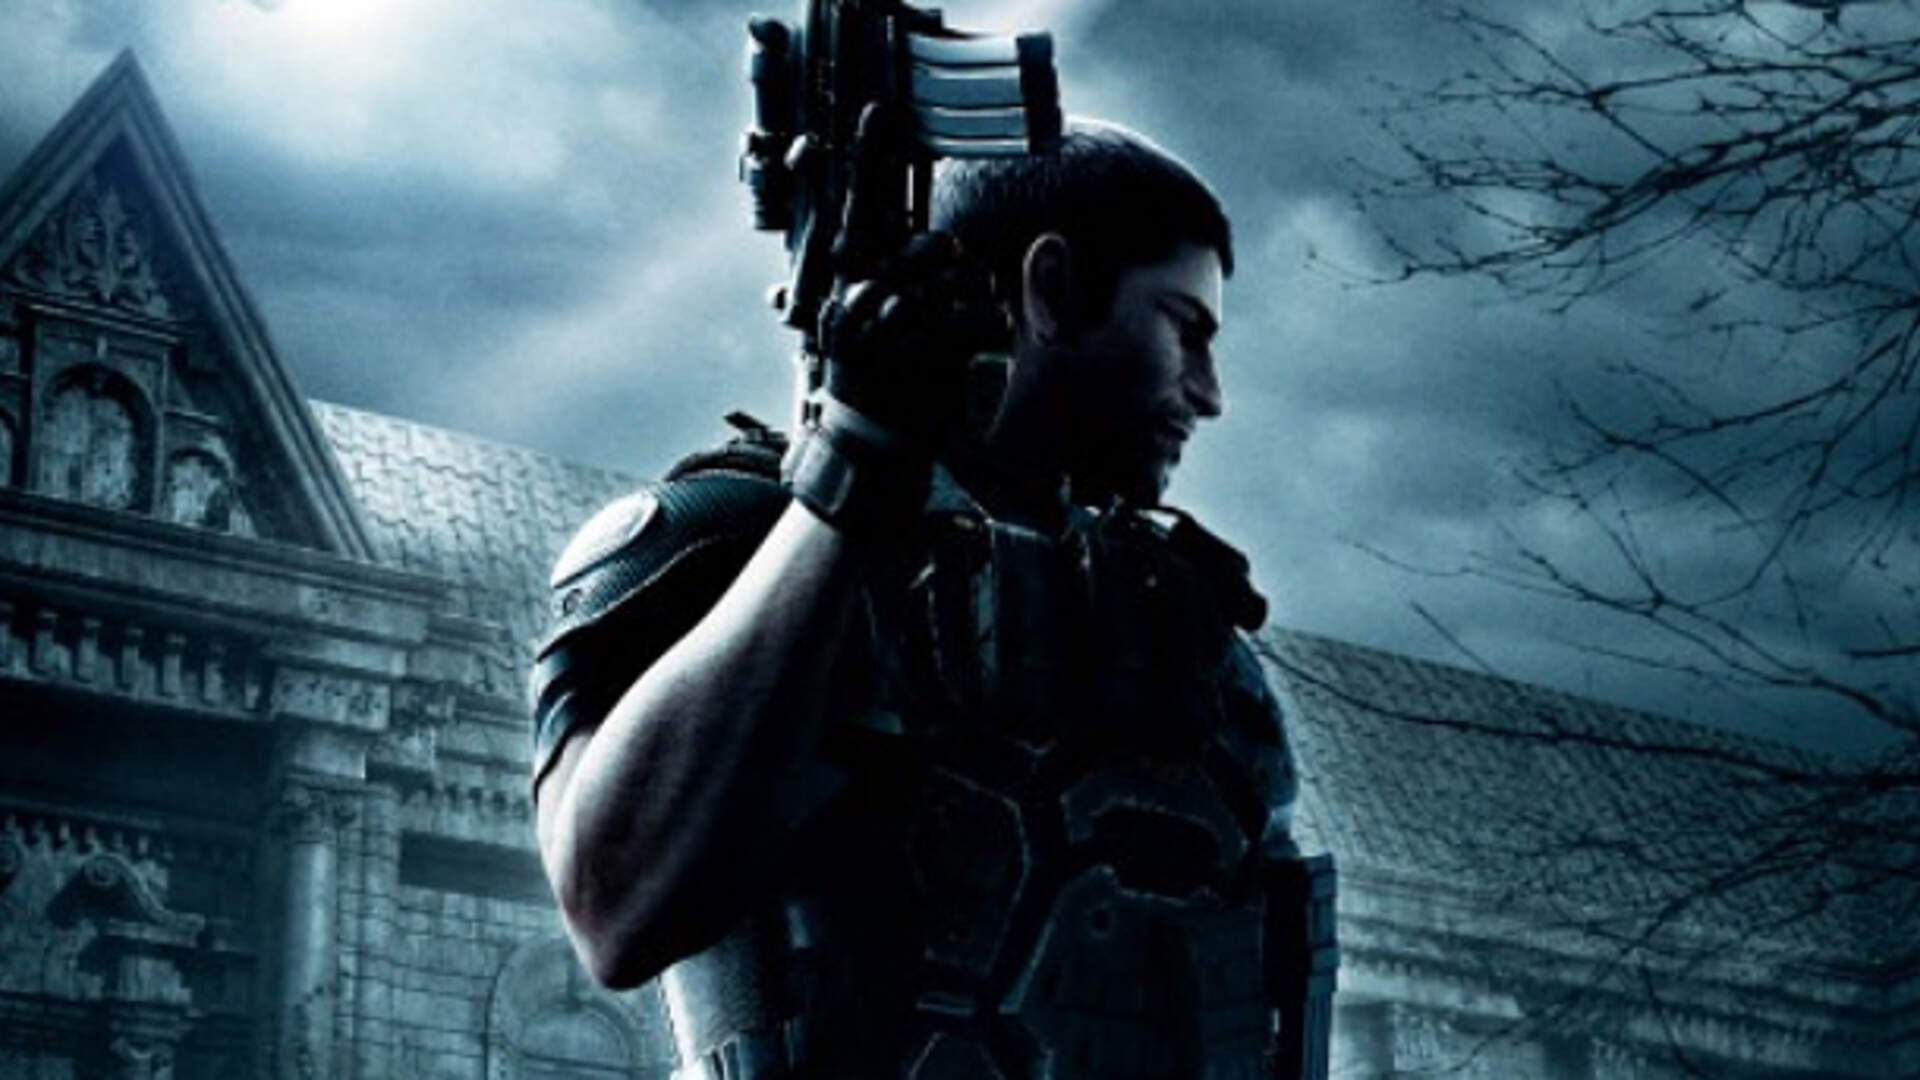 Resident Evil 7 S Cgi Prequel Film Brings Back Chris Redfield And